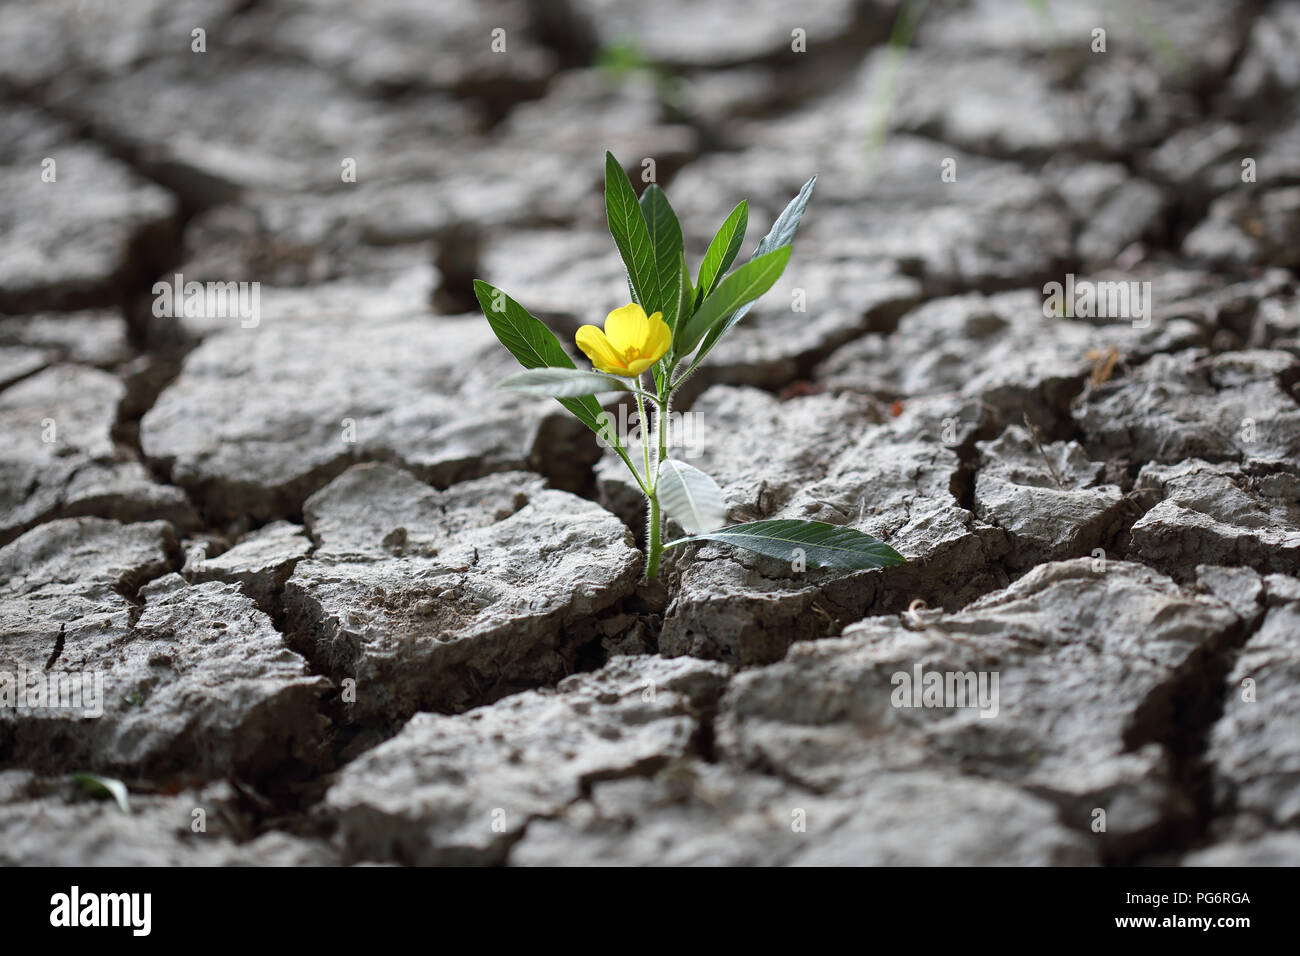 A Flourishing flower fighint through dried earth soil - Stock Image